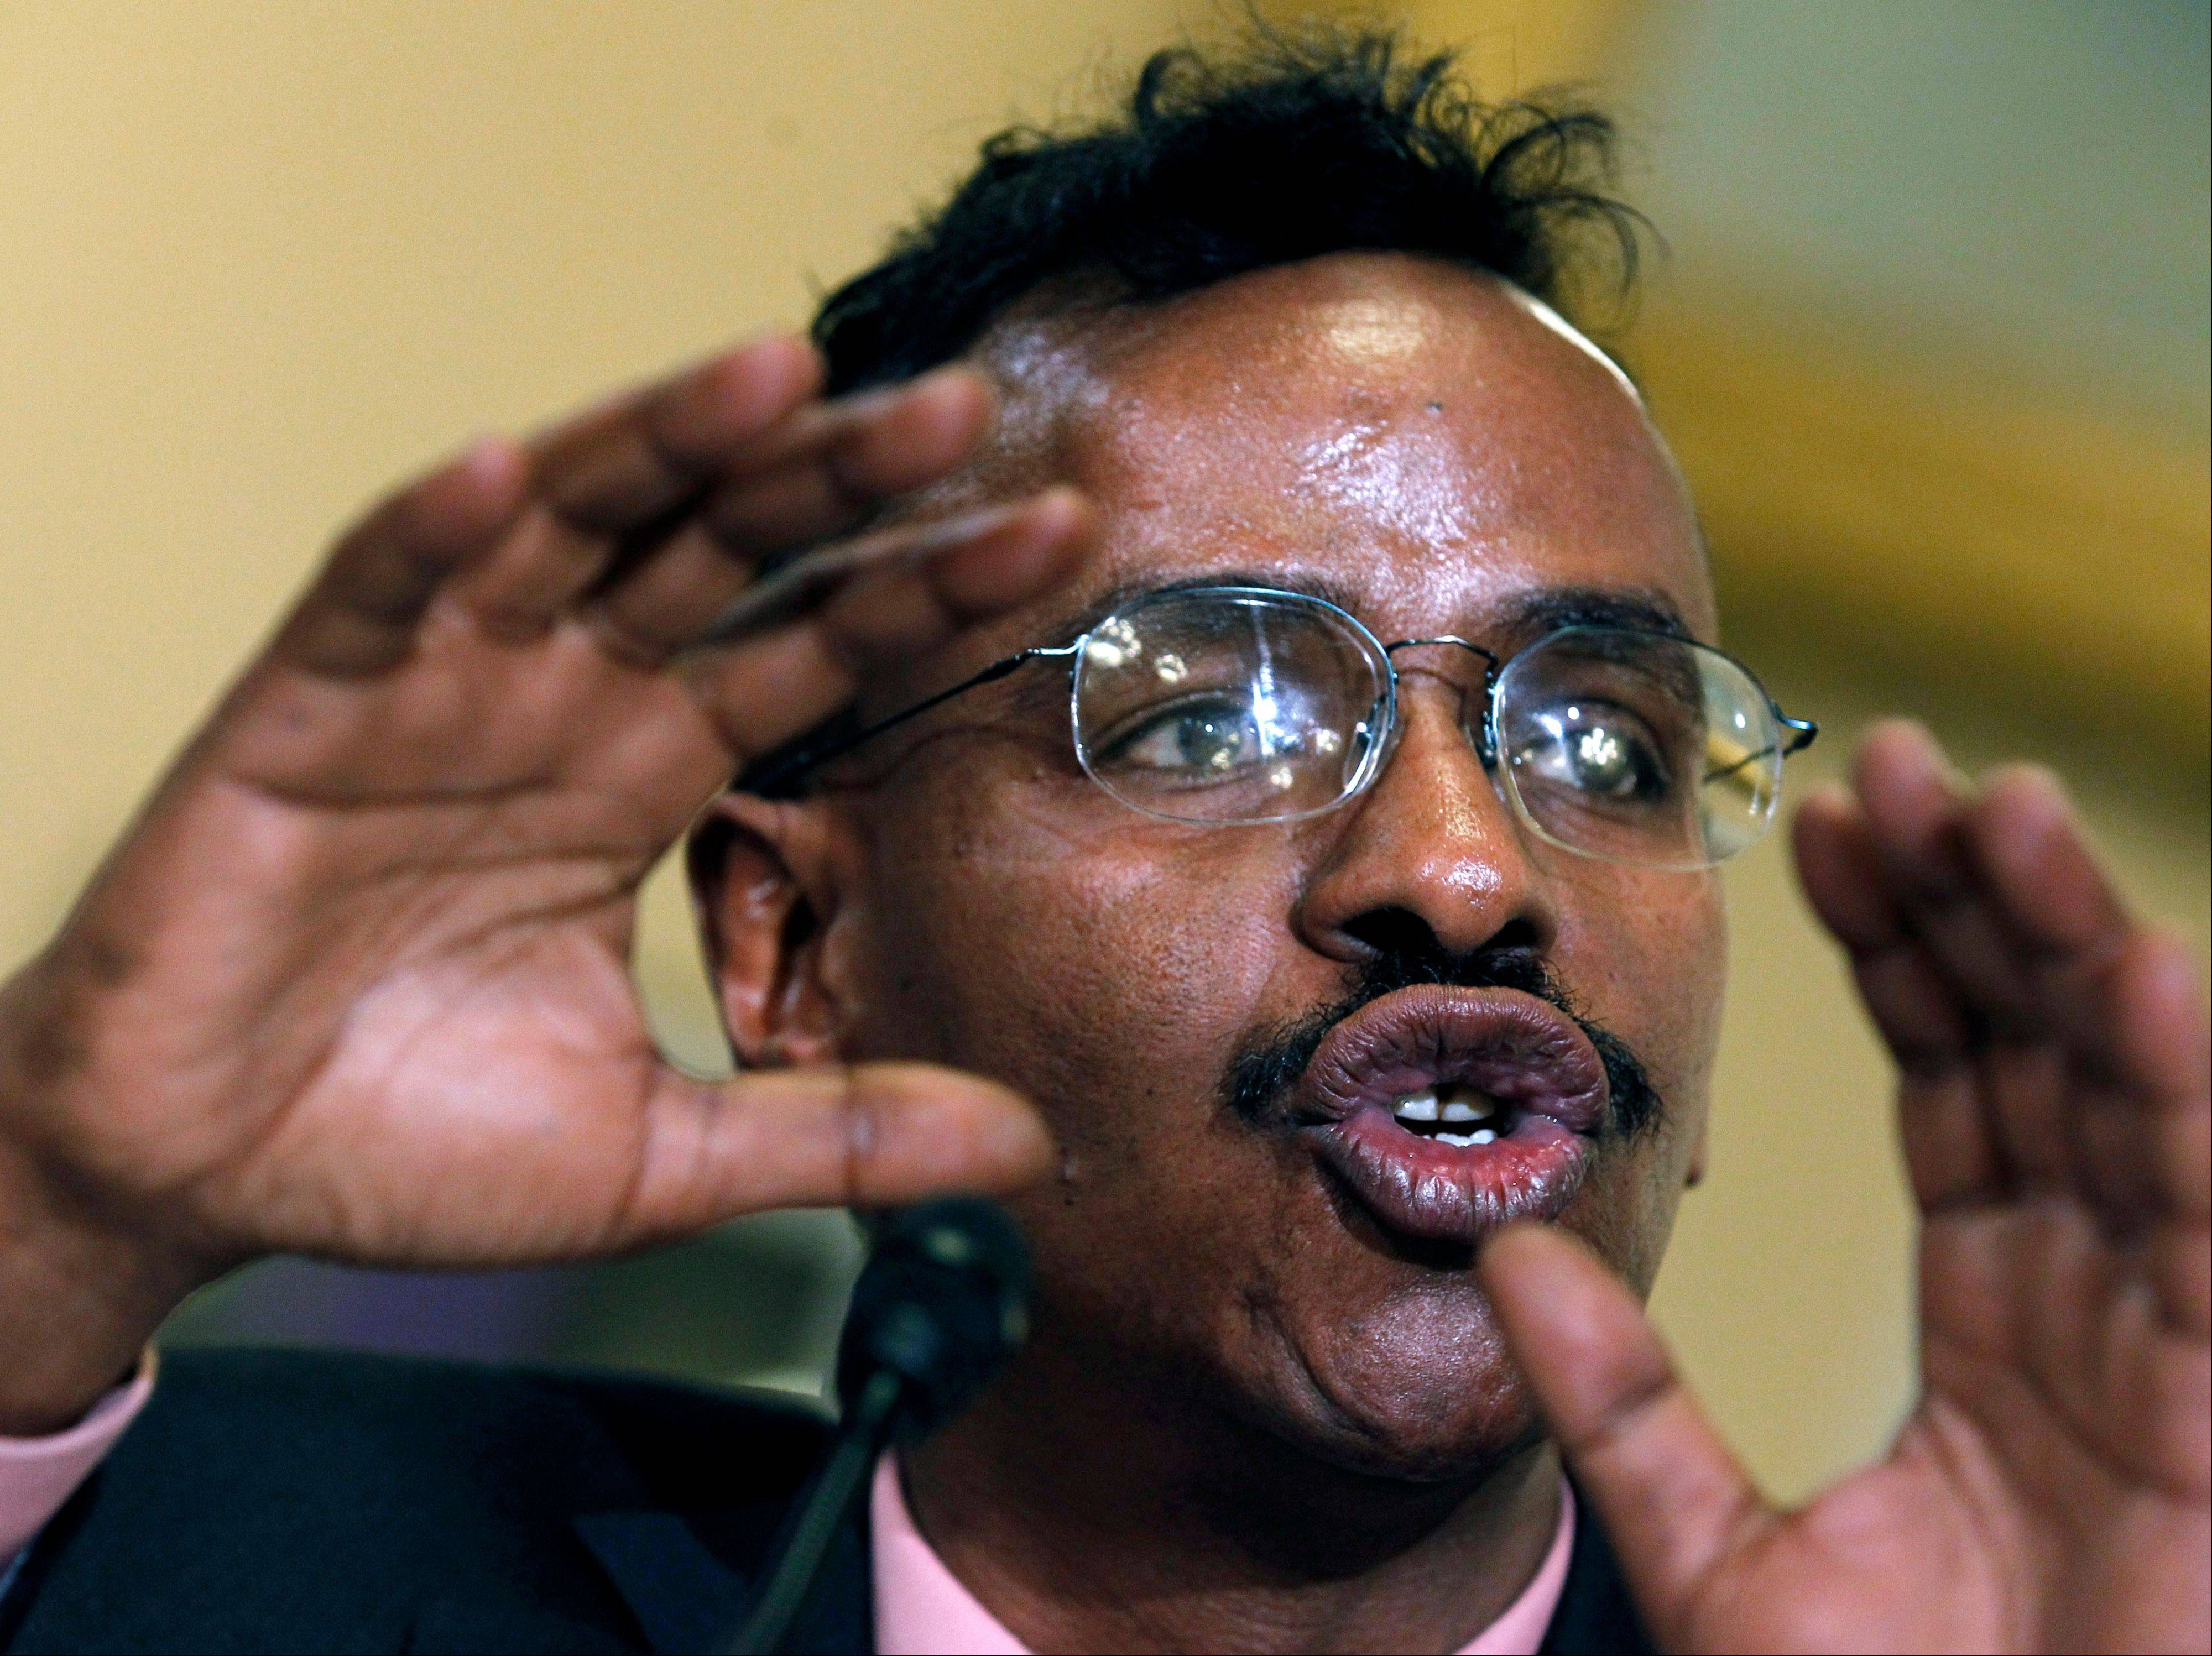 Abdirizak Bihi, a spokesman for the family of 21-year-old Omar Farah, said Farah traveled to Somalia to join al-Shabab, renewing fears that the terror group is continuing to recruit U.S. Somalis to return to their homeland to fight despite some high-profile prosecutions in America and the deaths of some who have joined the insurgents.